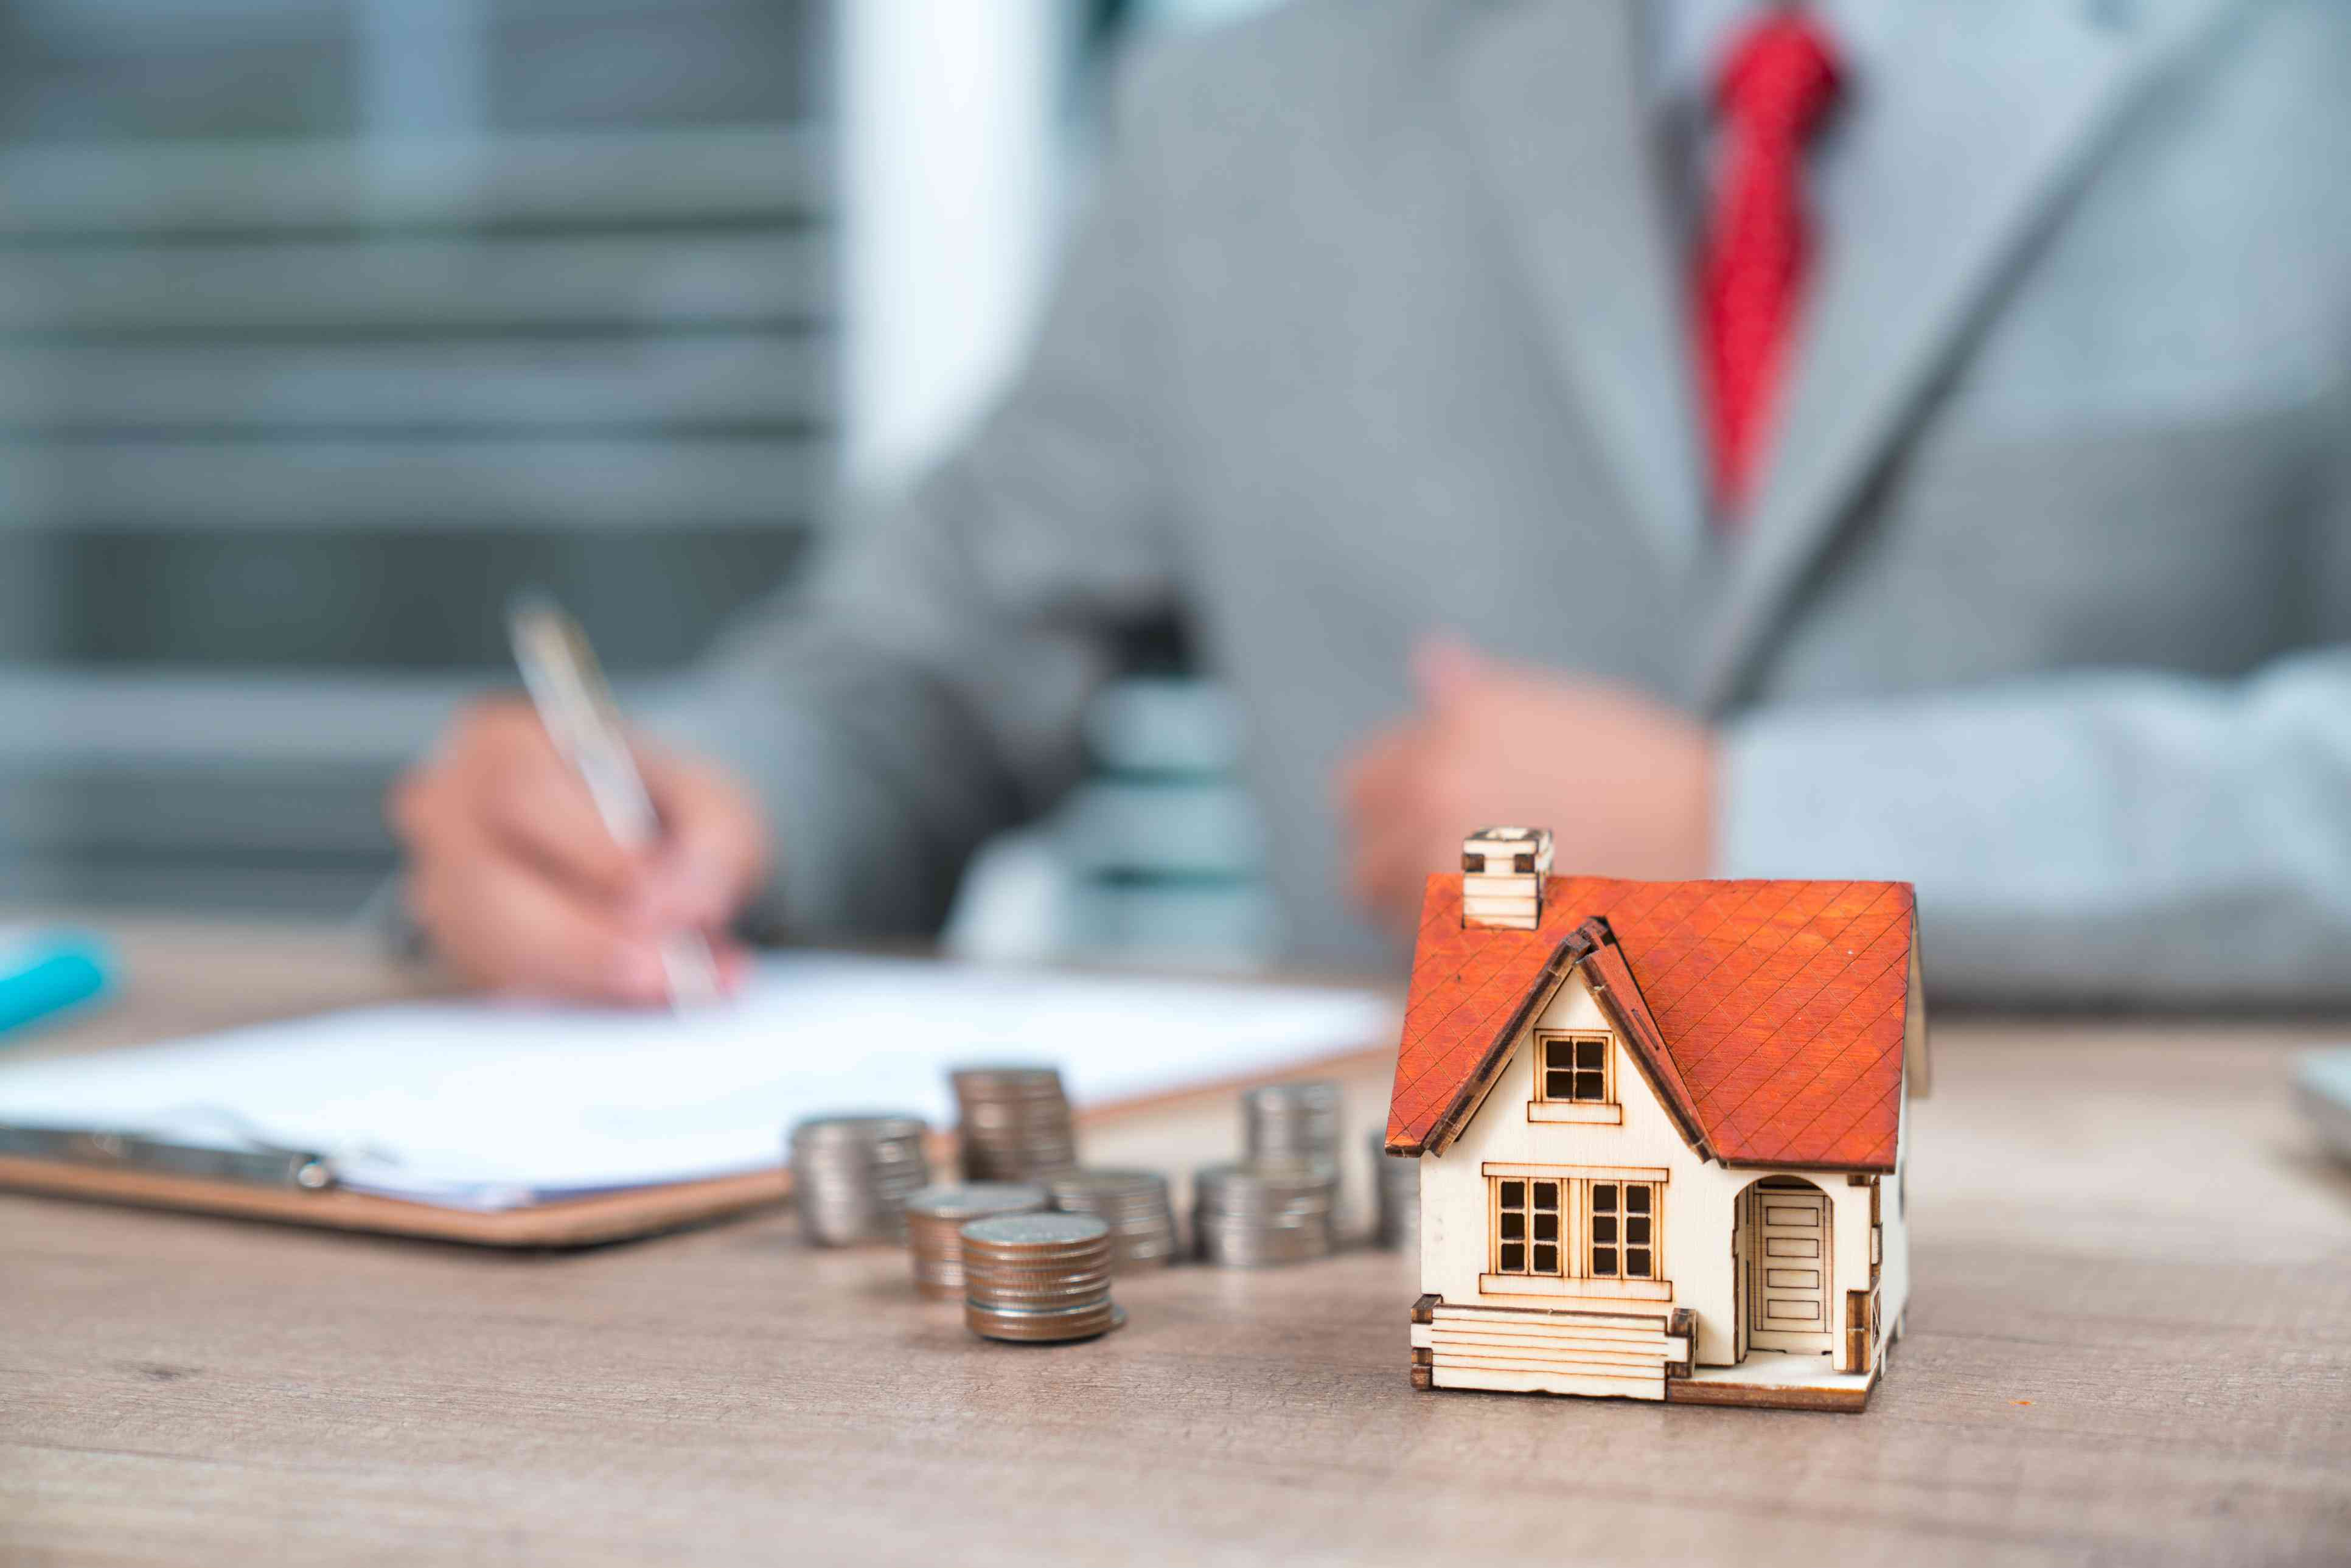 Check Out These Great Real Estate Investing Tips